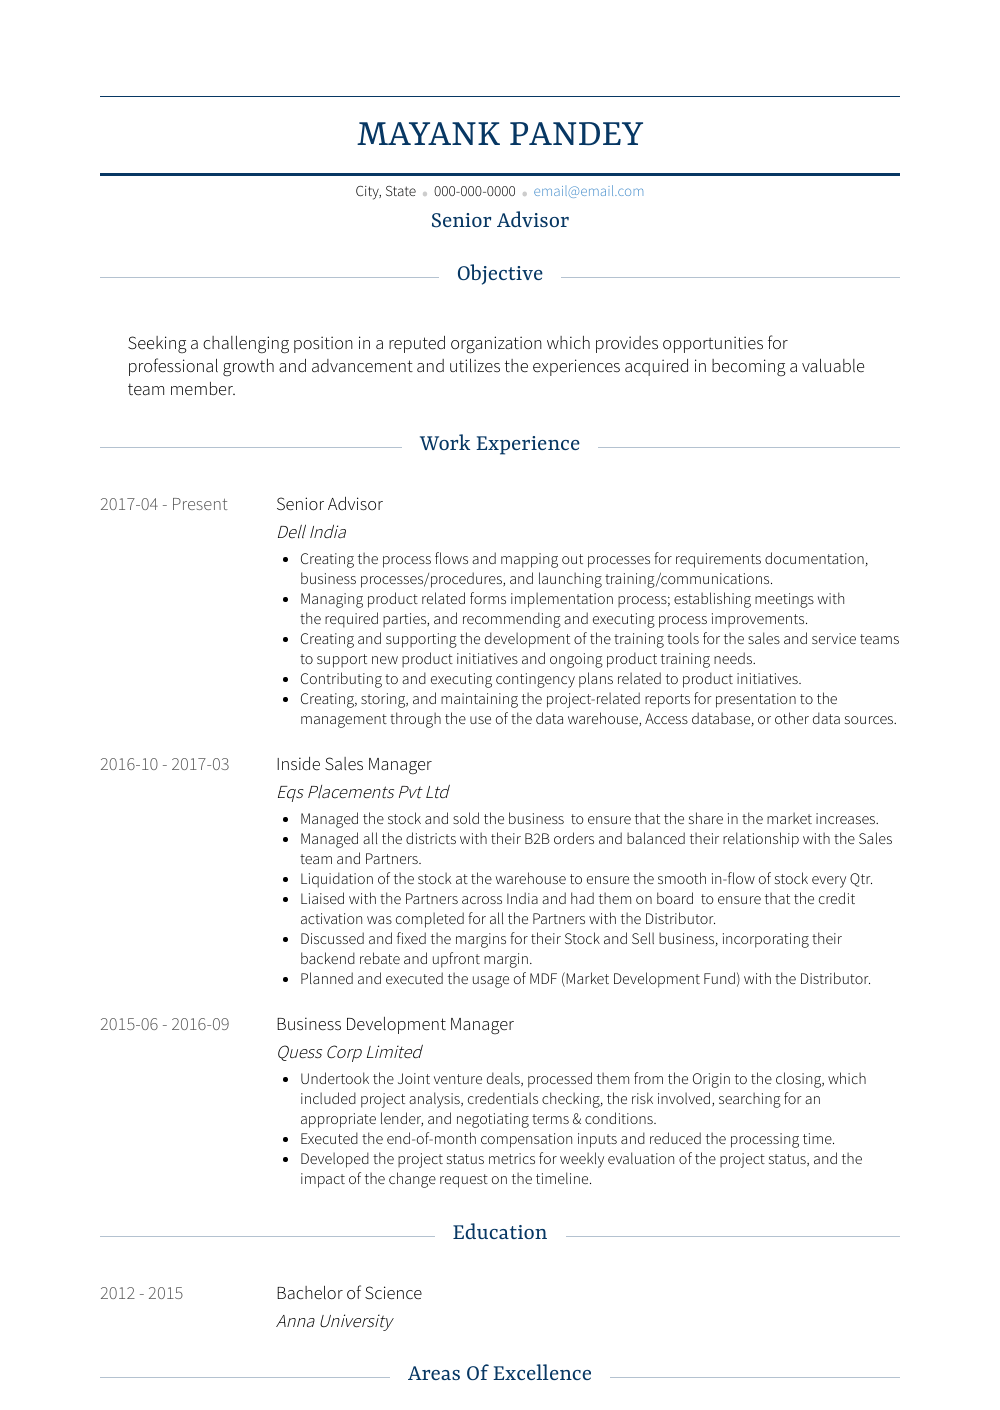 Senior Advisor Resume Sample